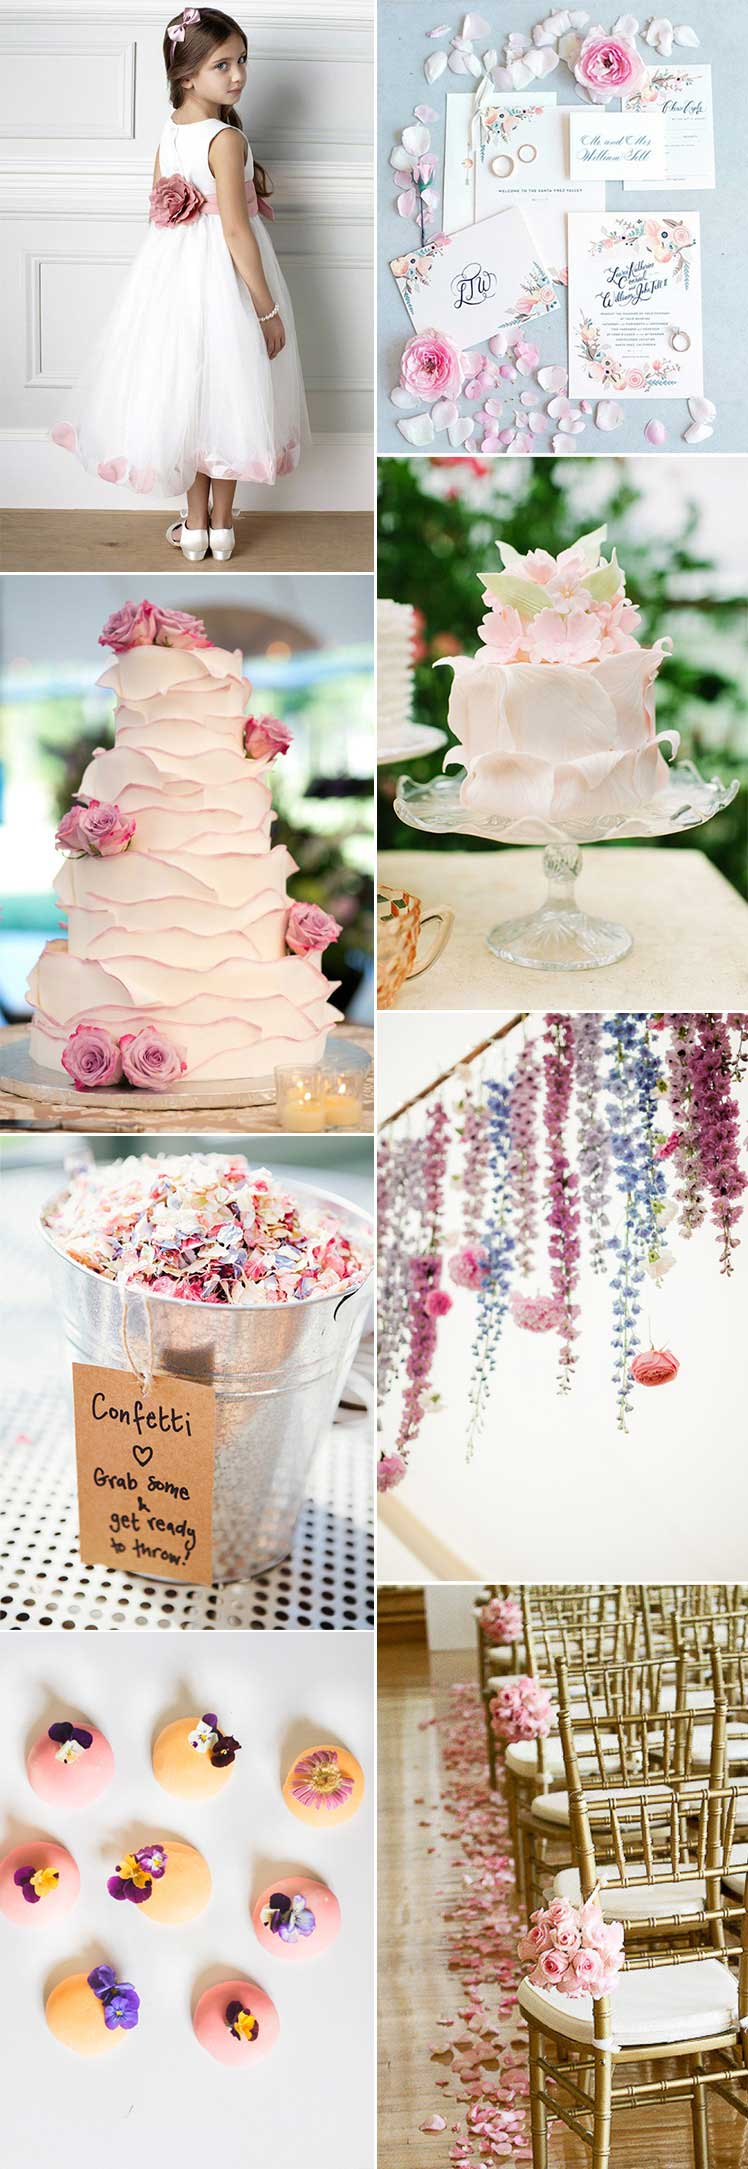 Pretty Petals Wedding Theme